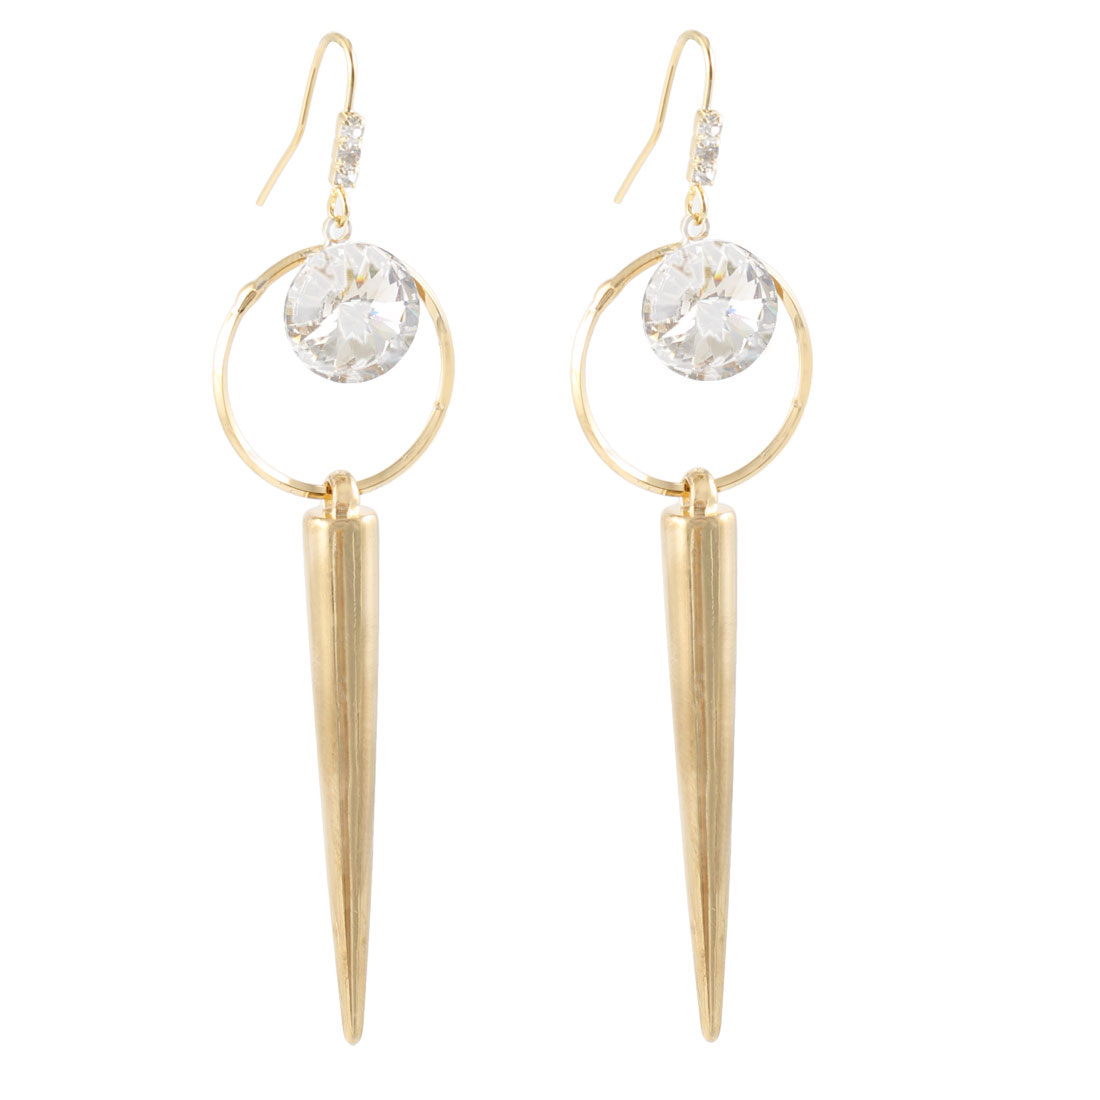 Faux Crystal Gold Tone Pepper Pendant Ear Hook Earrings for Lady